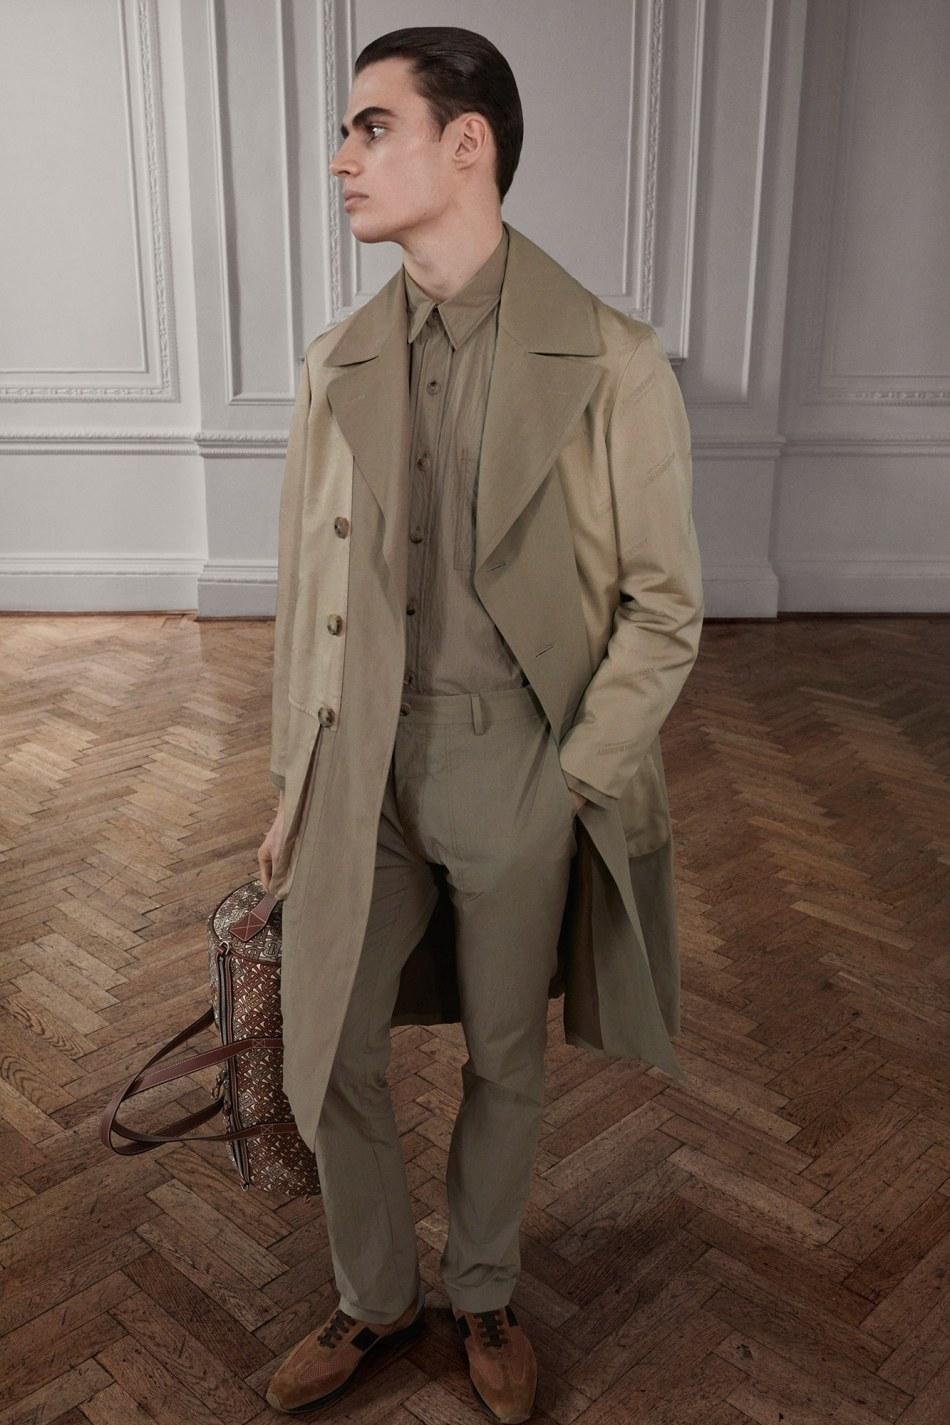 The Burberry Autumn/Winter 2019 Pre-Collection